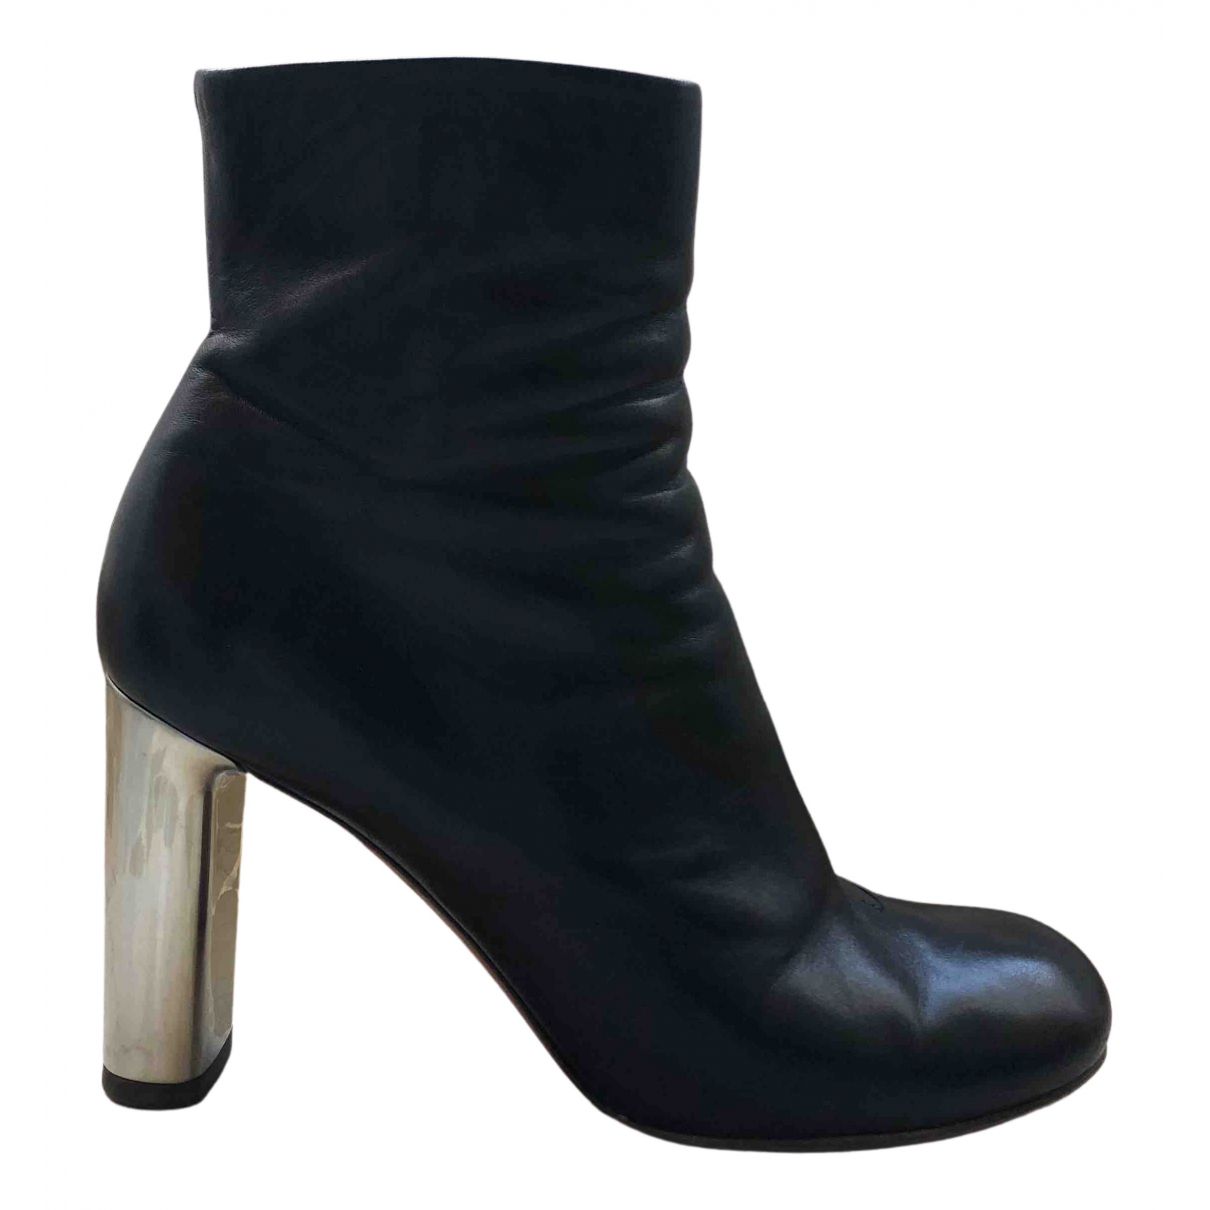 Celine N Black Leather Ankle boots for Women 37.5 EU